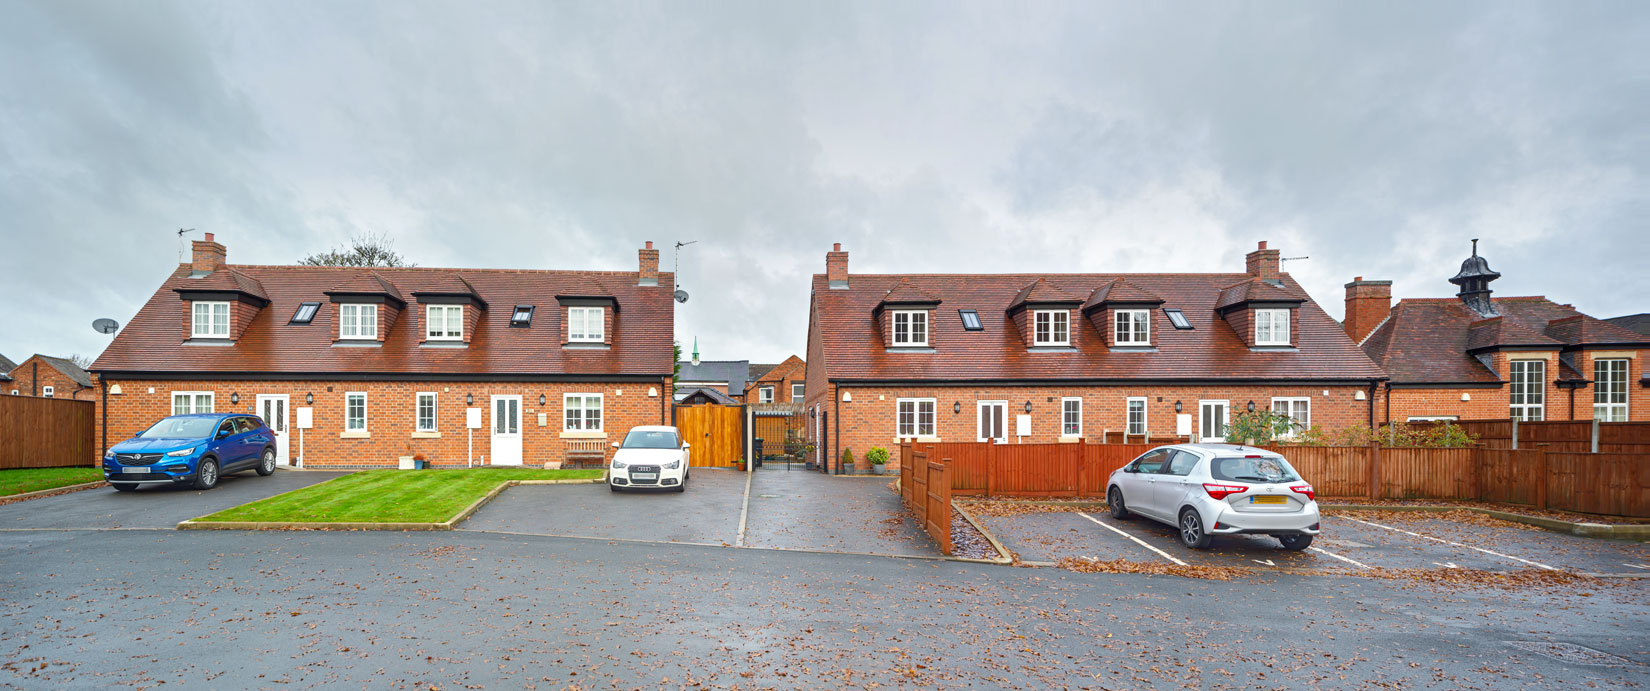 Semi detached single storey residential housing, with accommodation in roof space